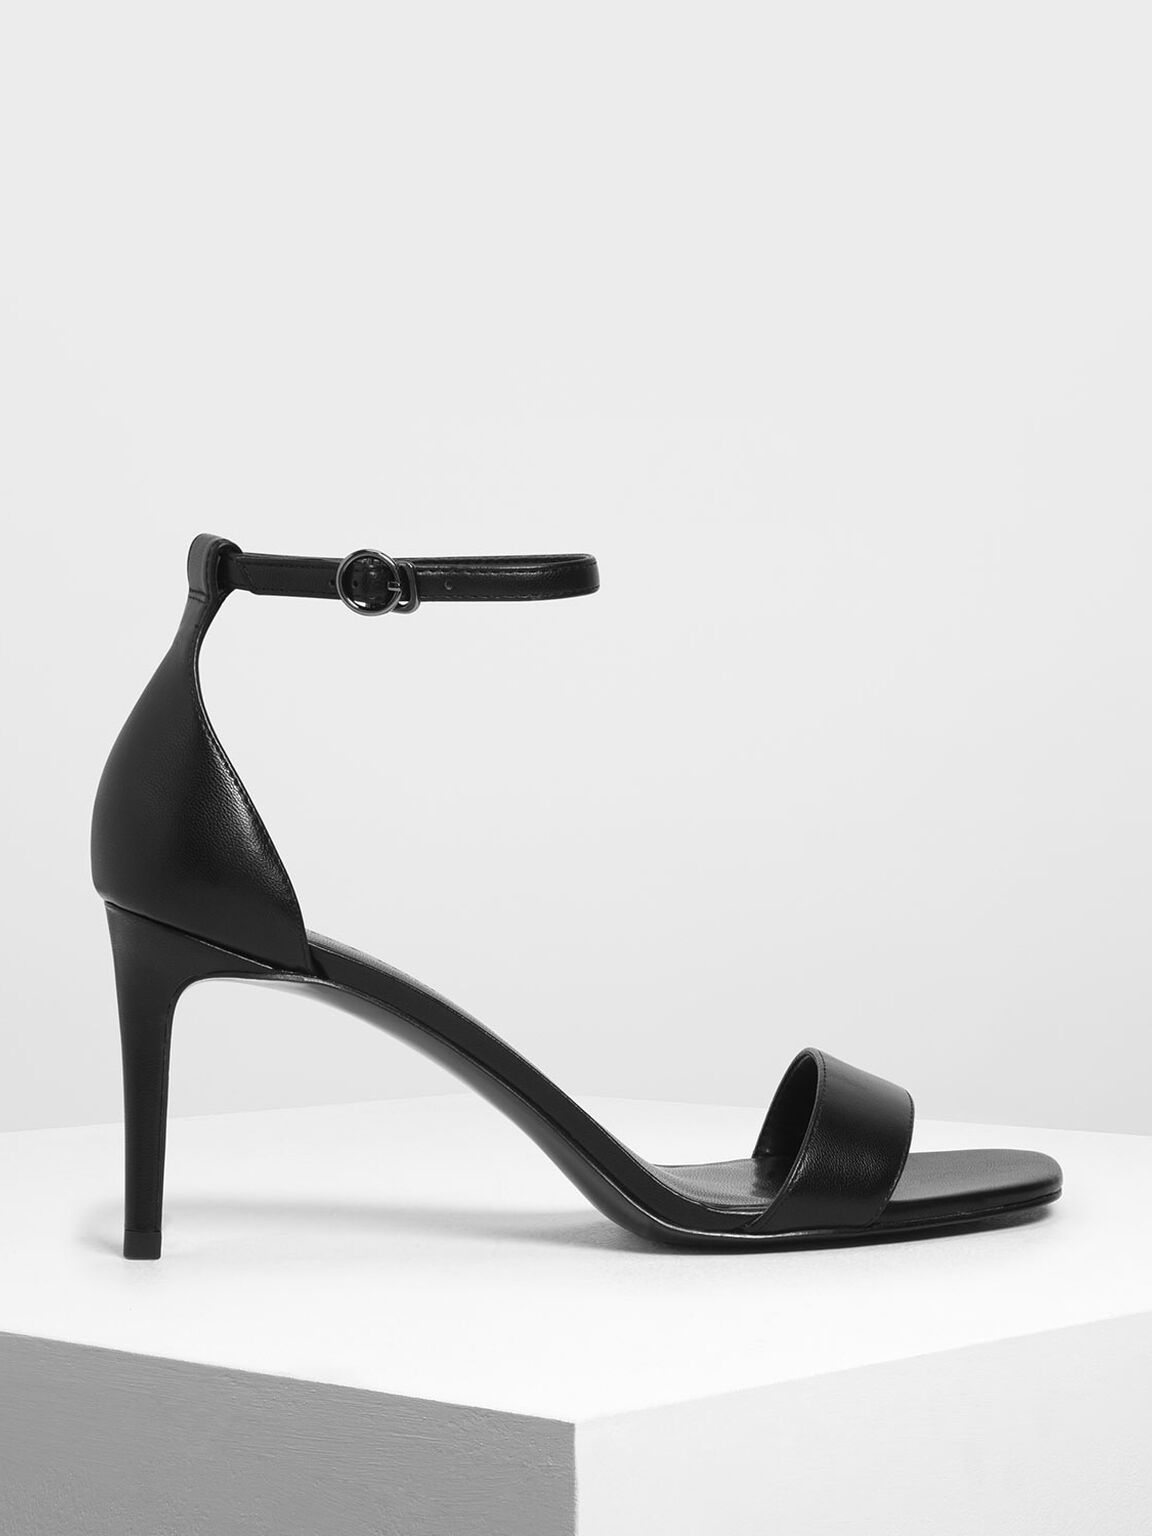 Classic Ankle Strap Heels, Black, hi-res